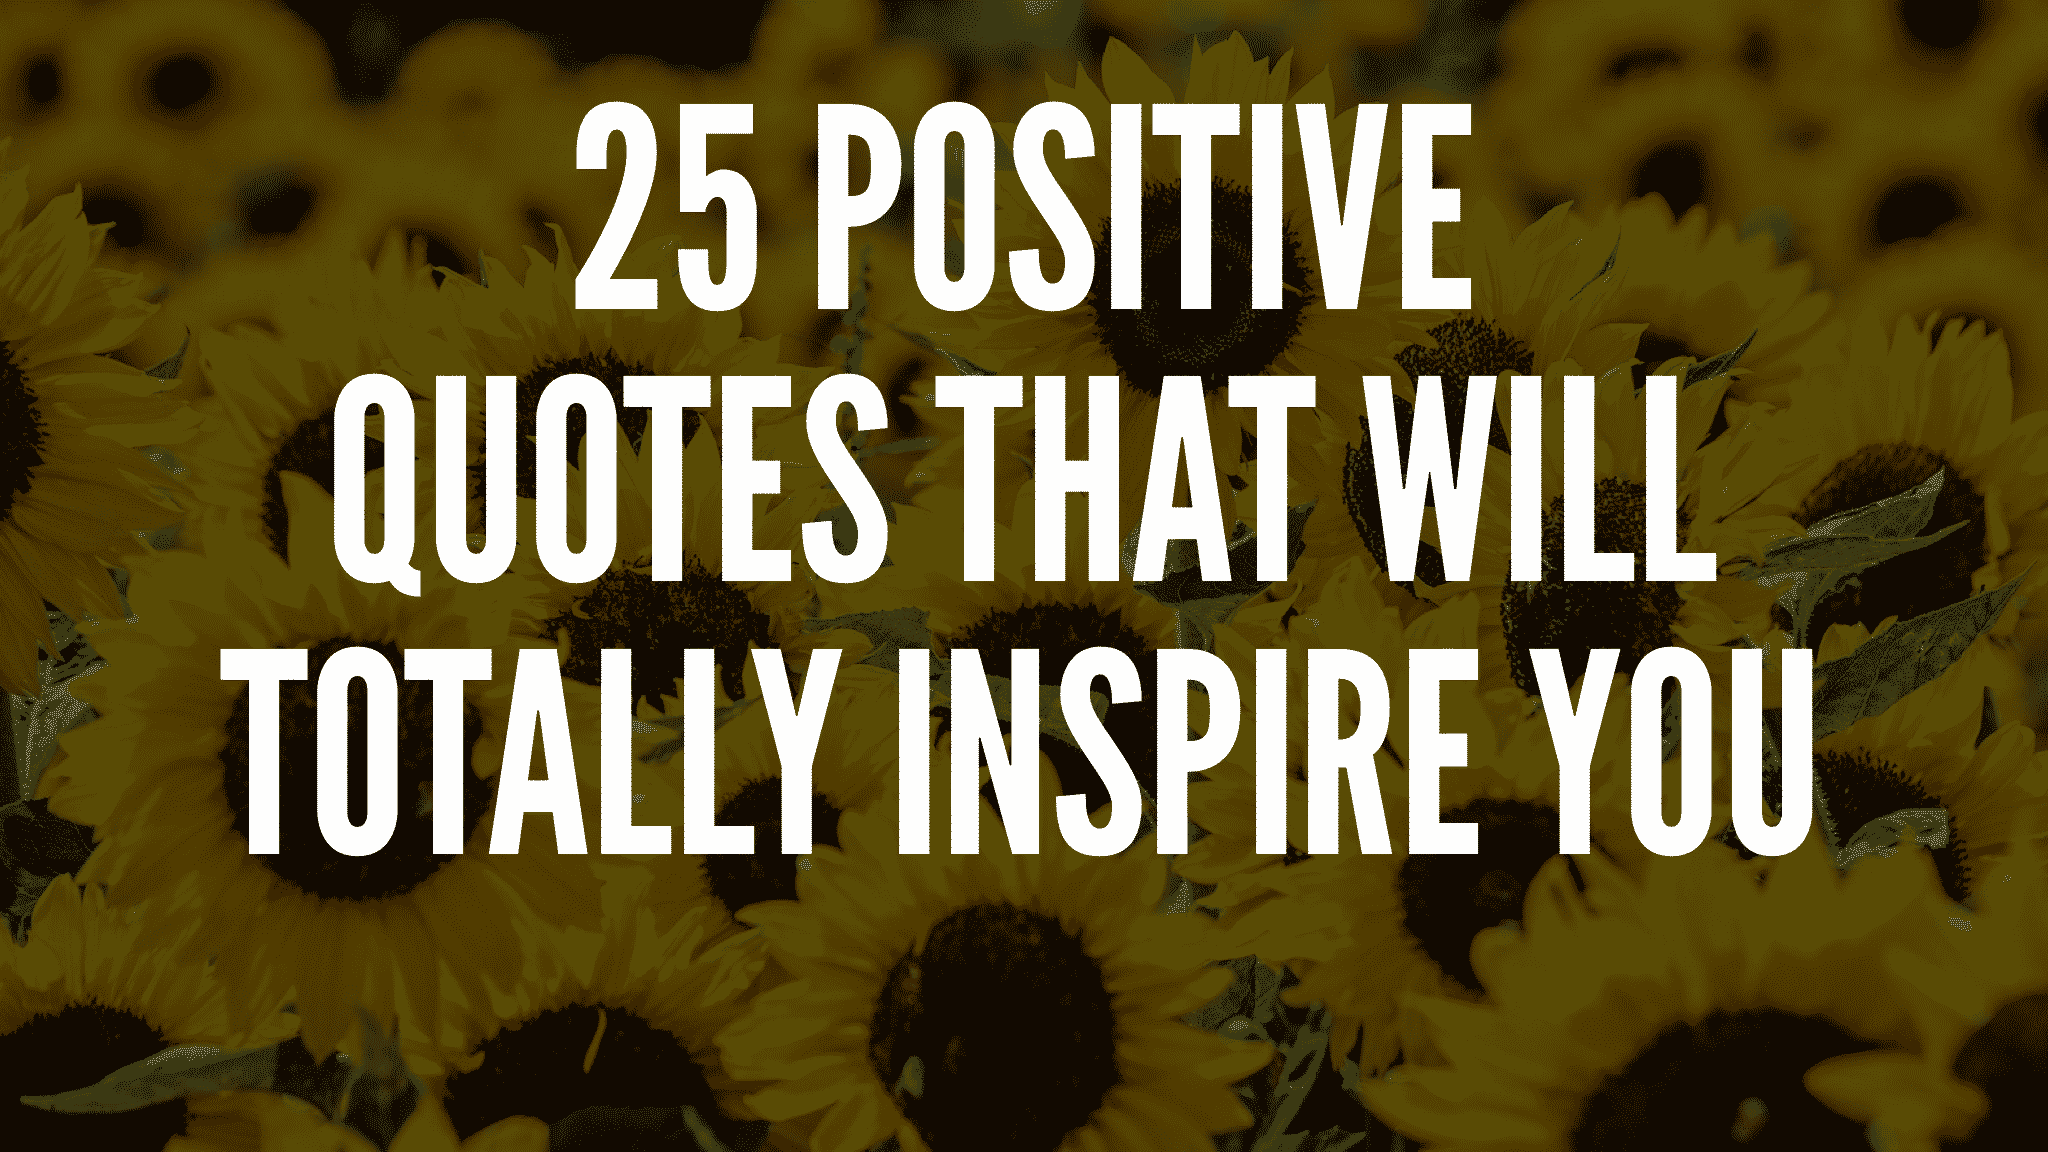 Positive Quotes That Will Totally Inspire You